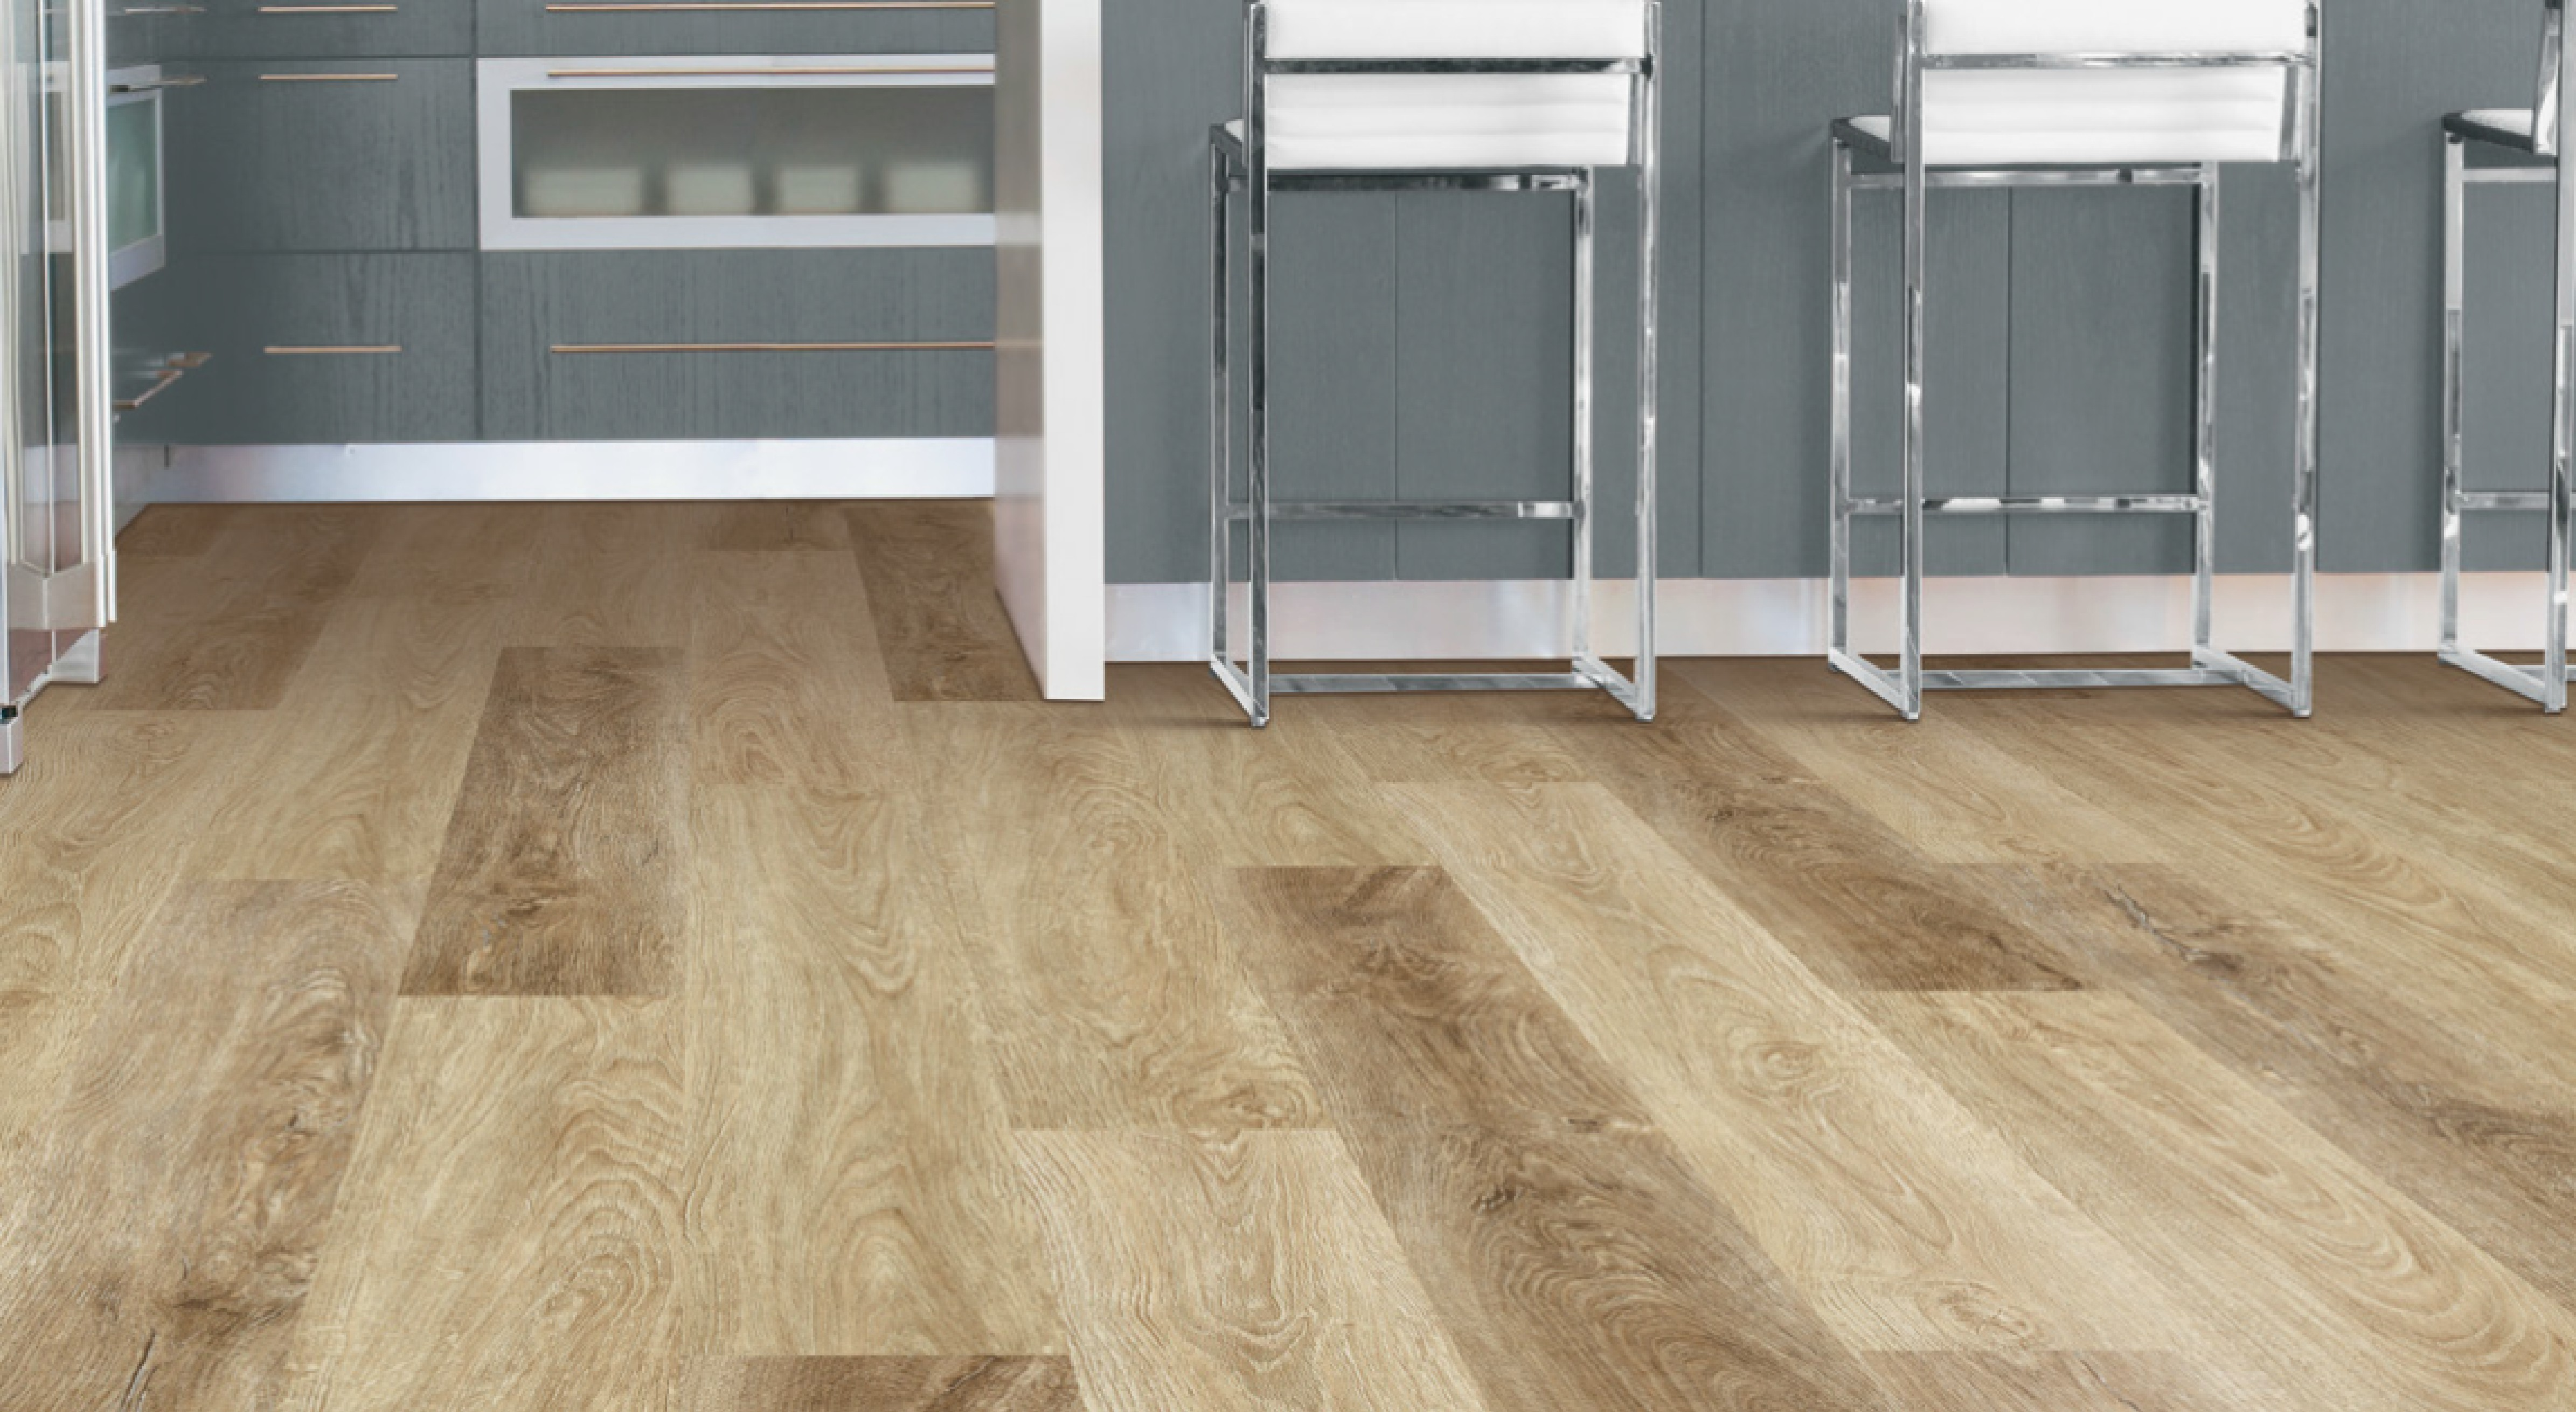 Absolute Flooring Luxury Vinyl Plank Flooring Services